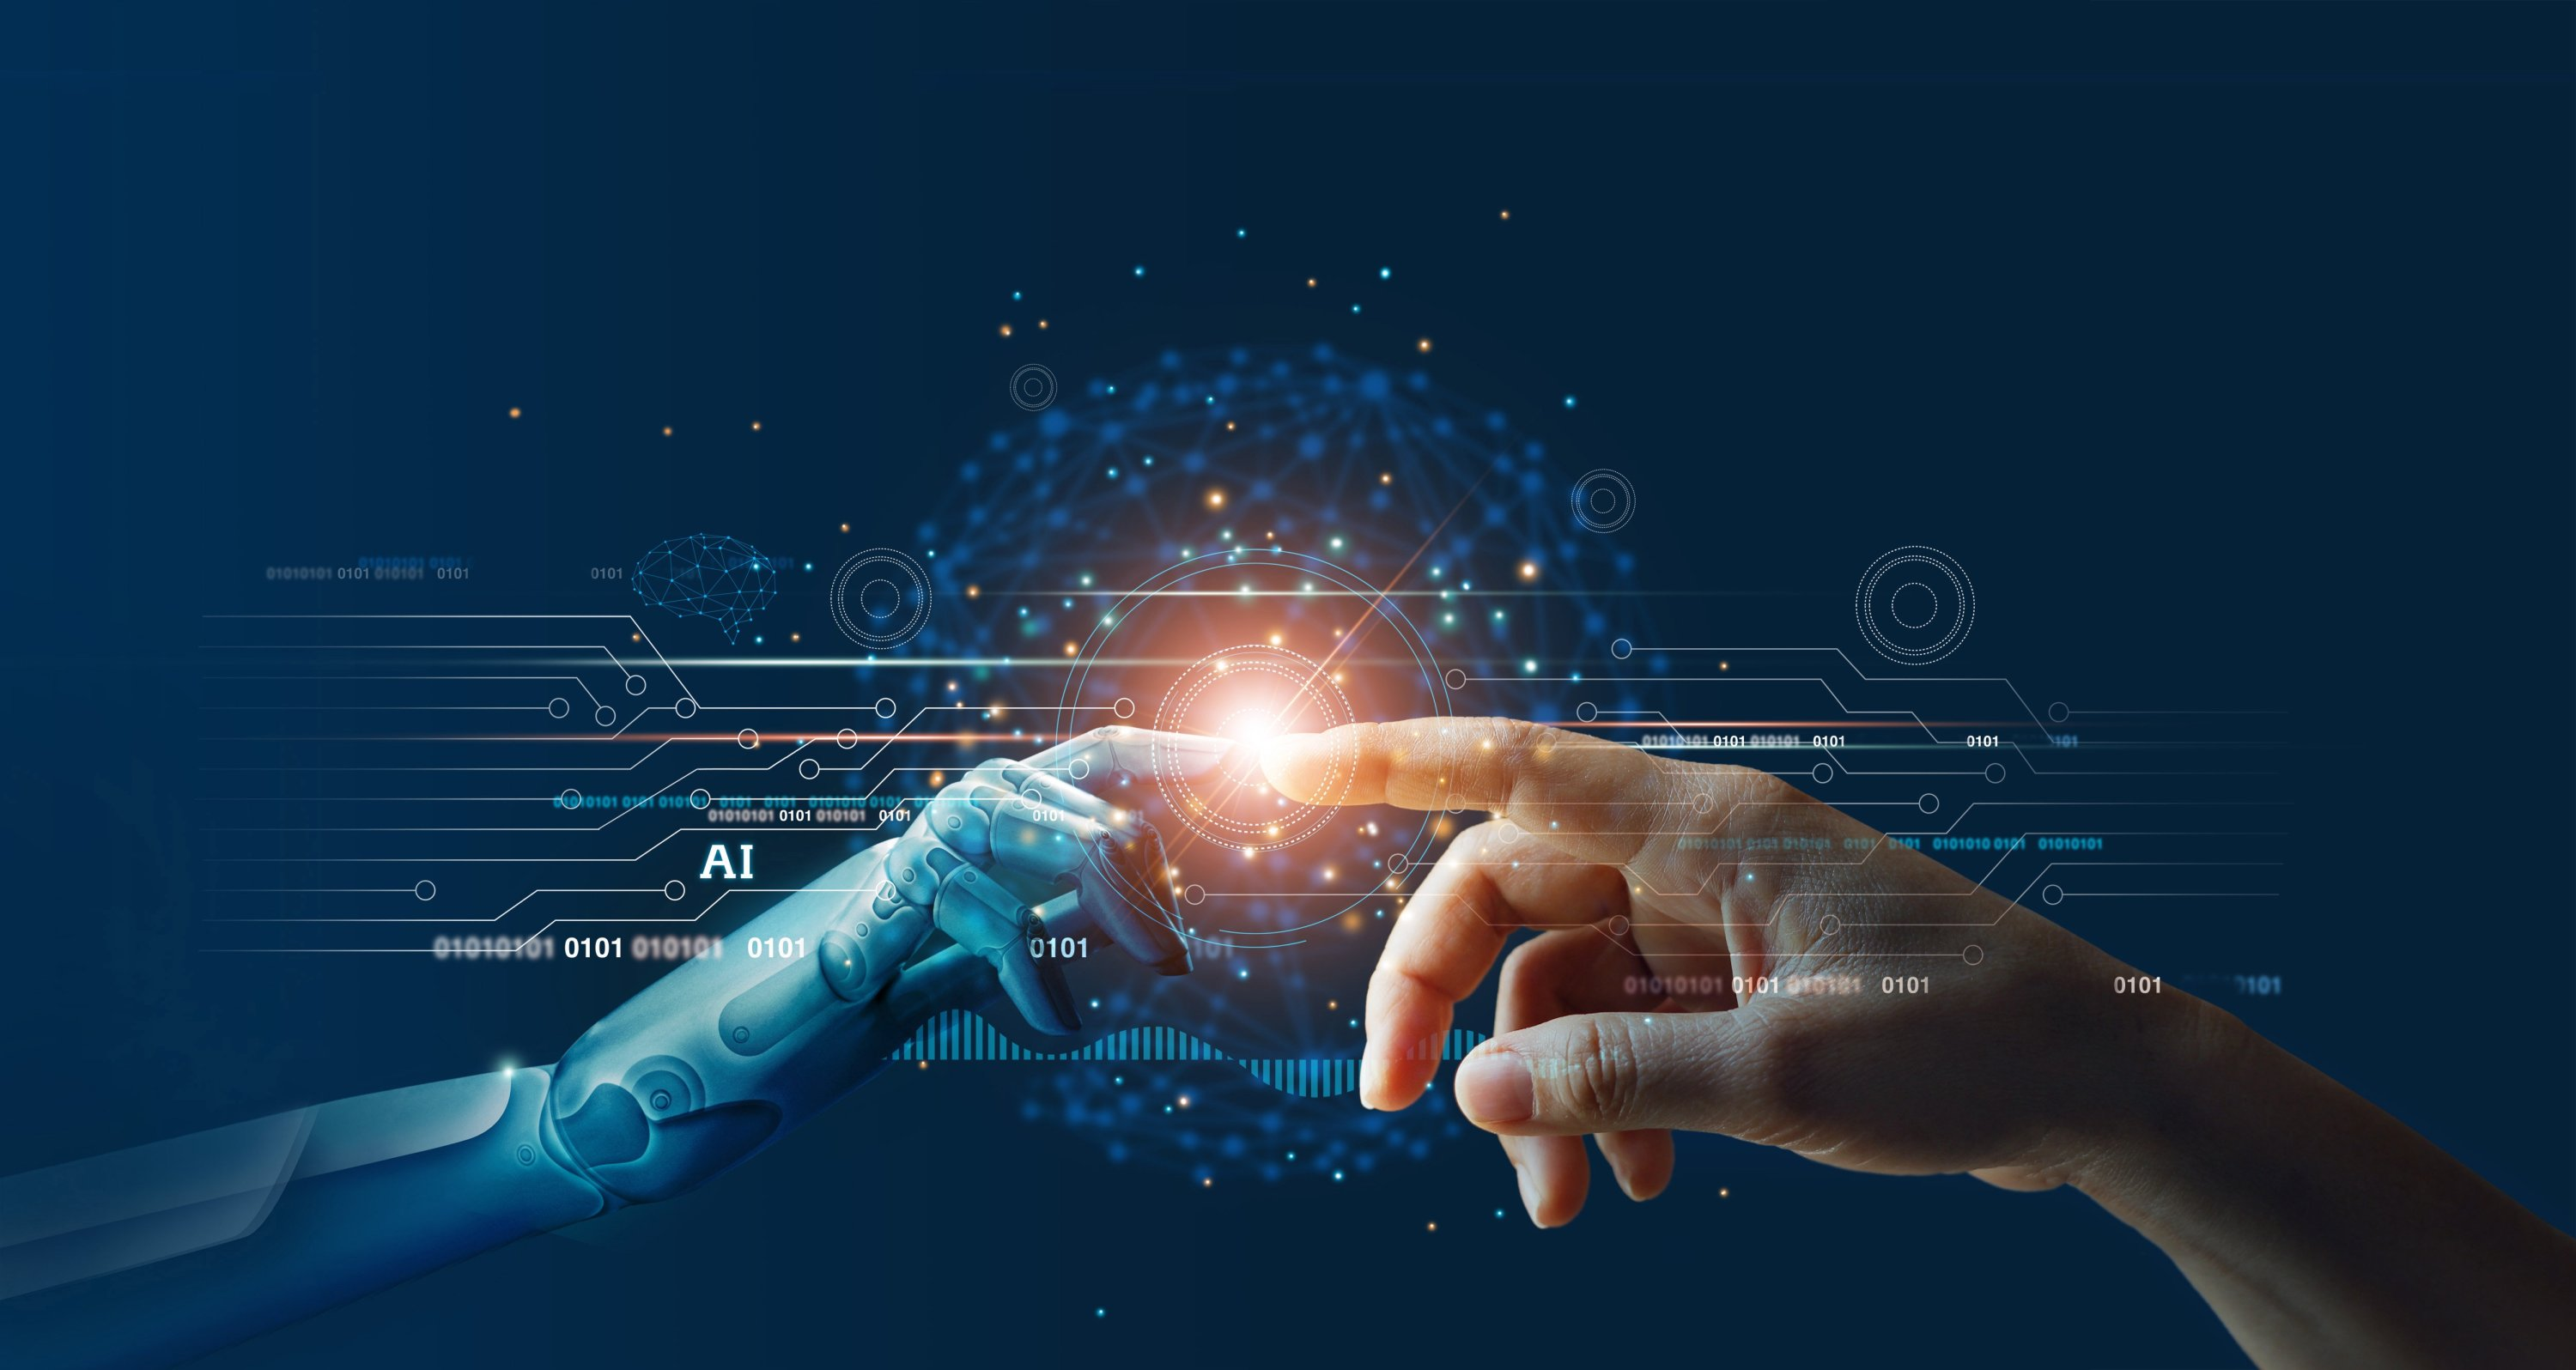 Hands of a robot and a human touching on big data network connection background.